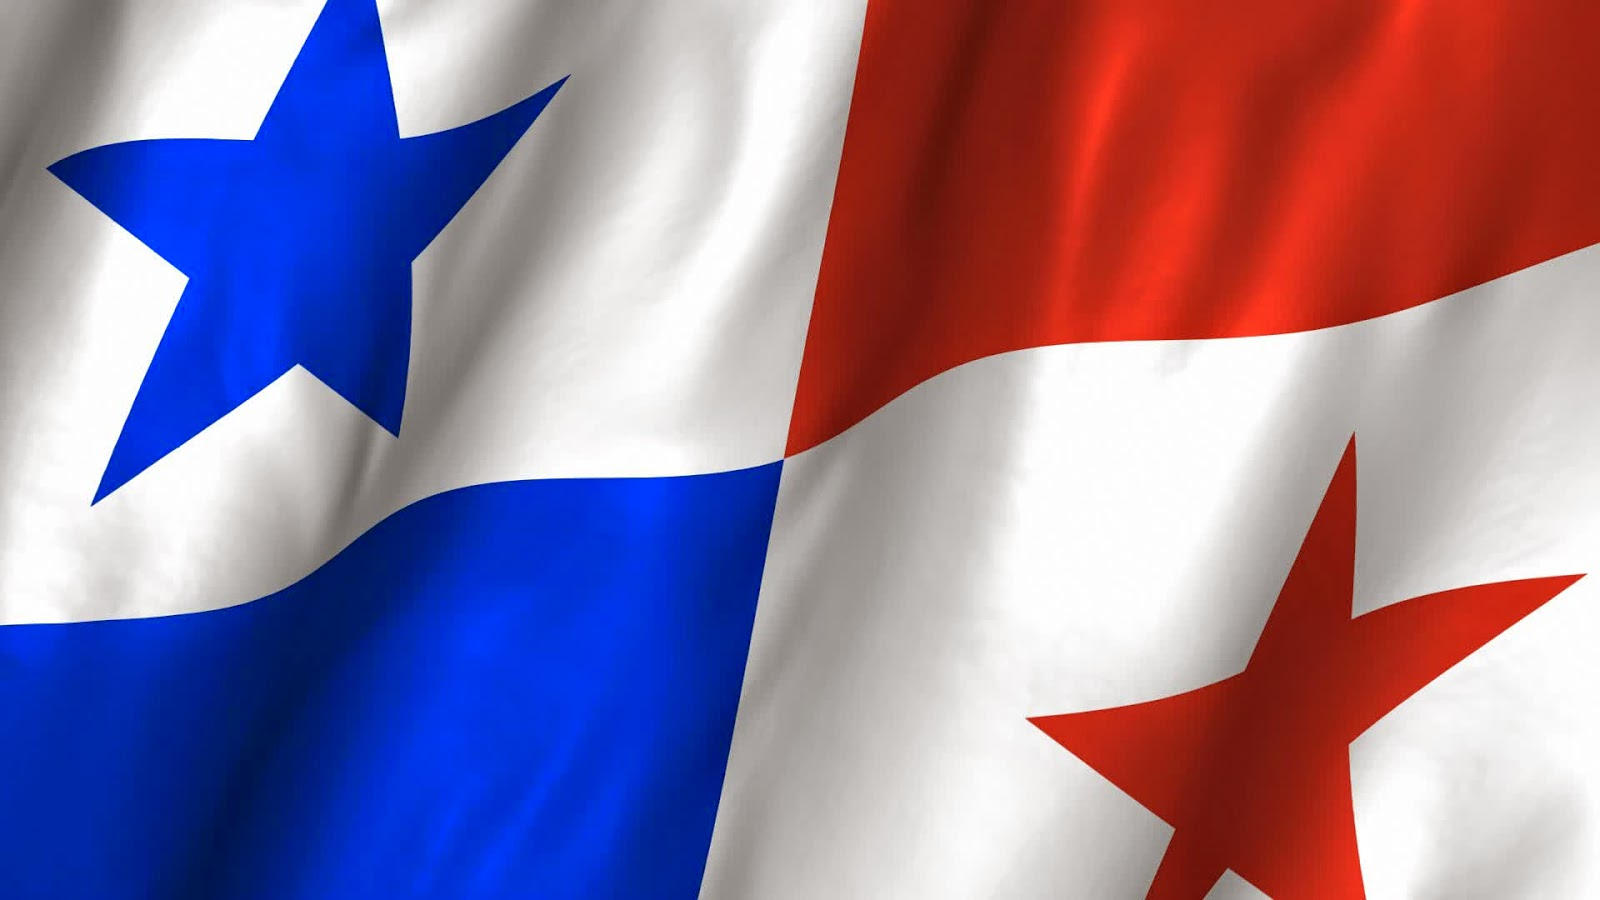 panamanian flag meaning